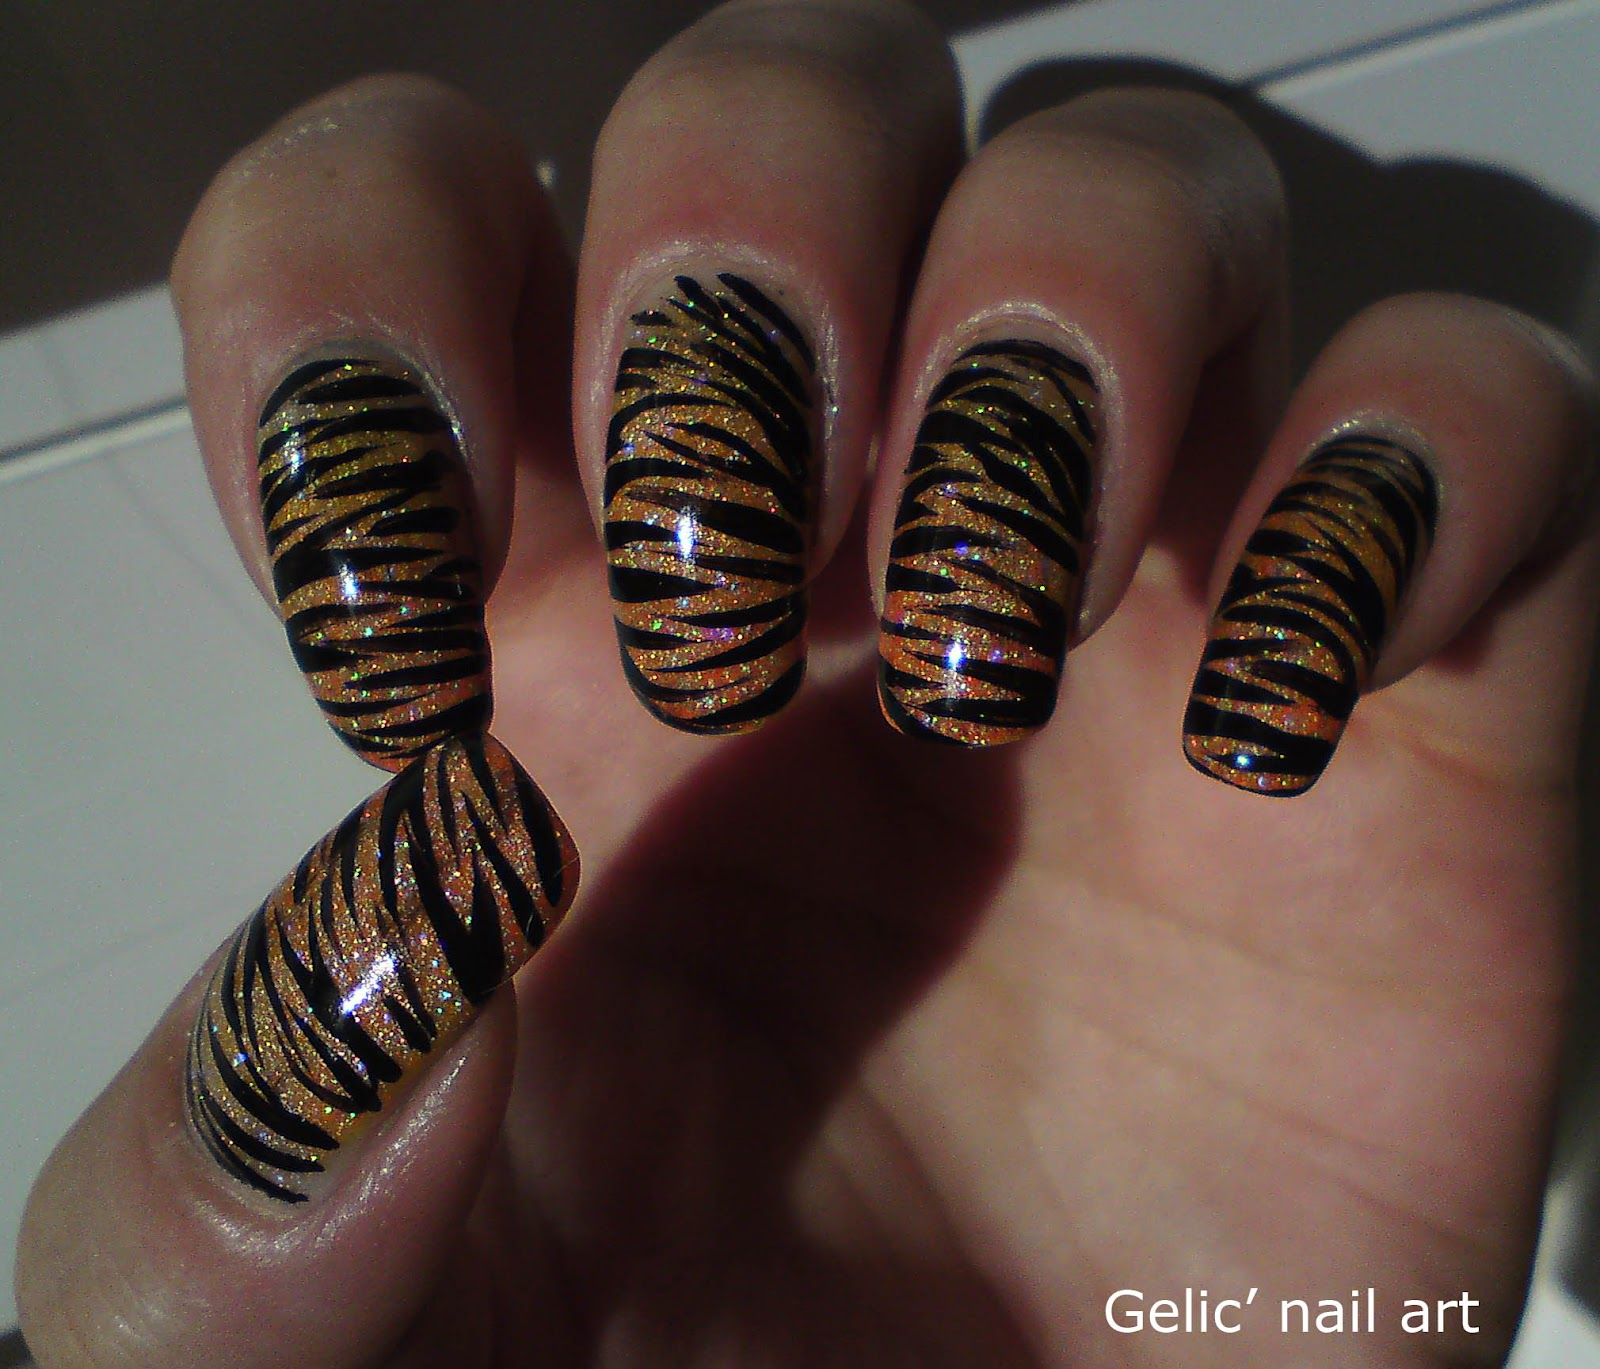 Gelic Nail Art Tiger Nail Art On Orange Neon Holo Gradient